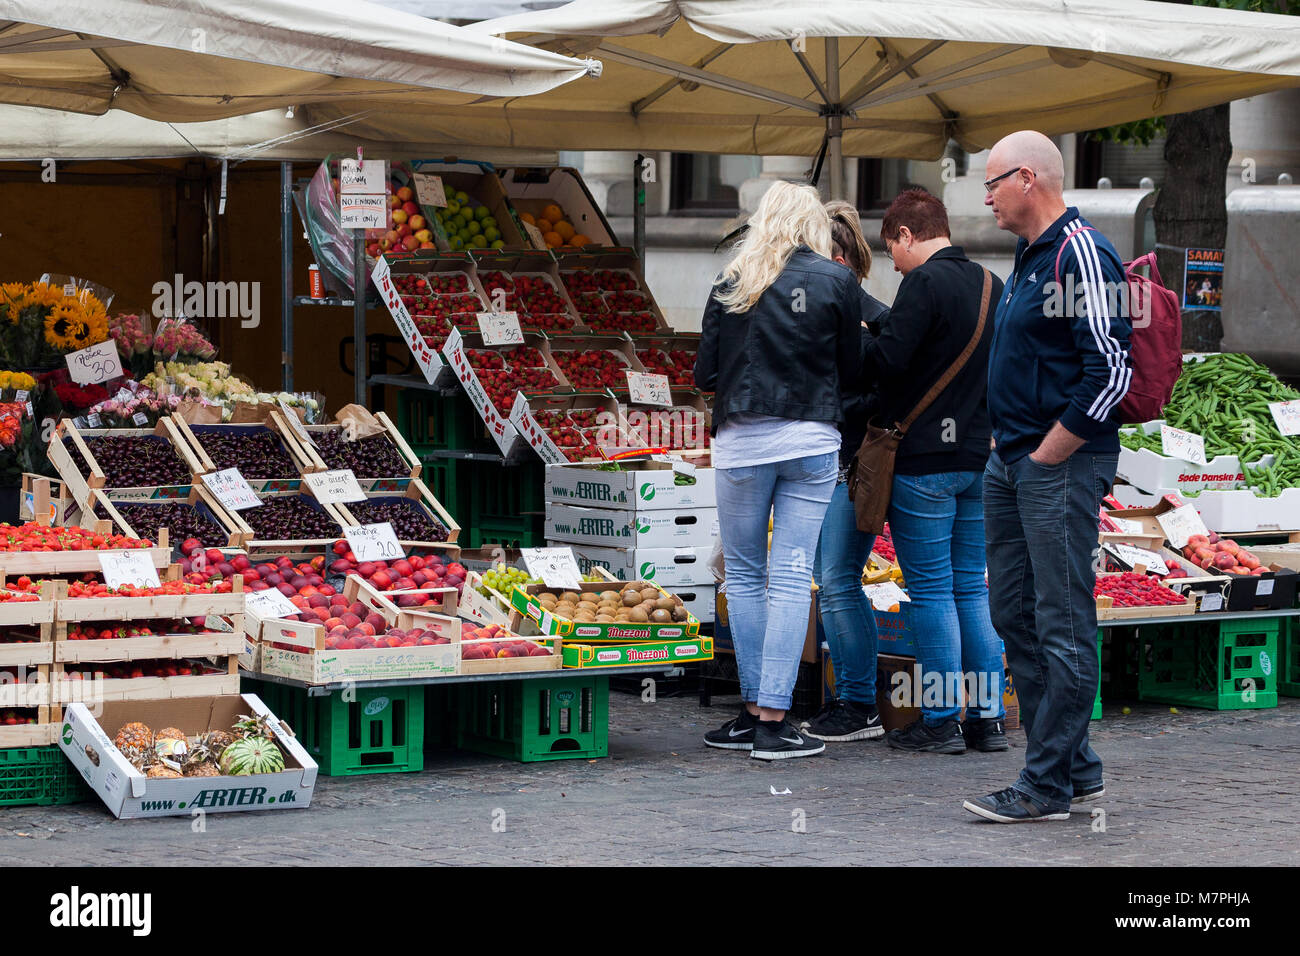 market stall selling fresh fruit and vegetables. Copenhagen Denmark - Stock Image